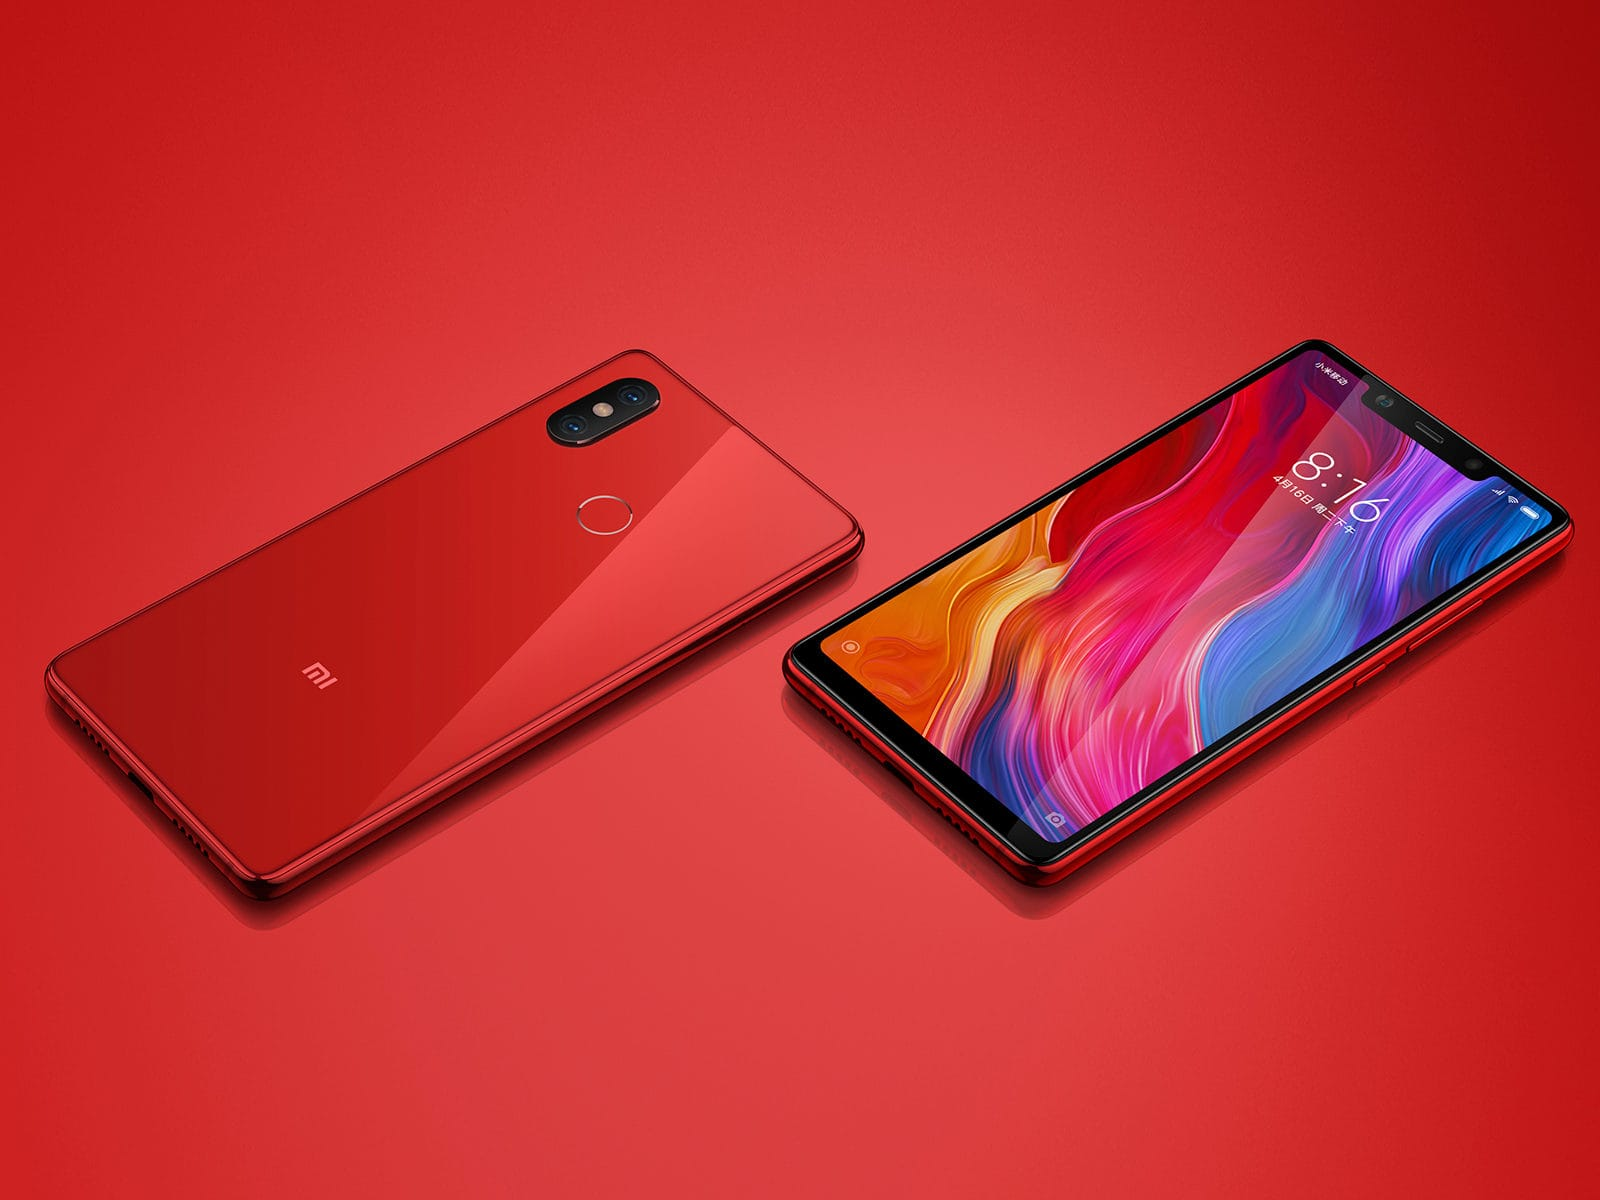 Xiaomi Mi 8 Pro Mi A2 Lite Redmi 6s Redmi 6x And Other